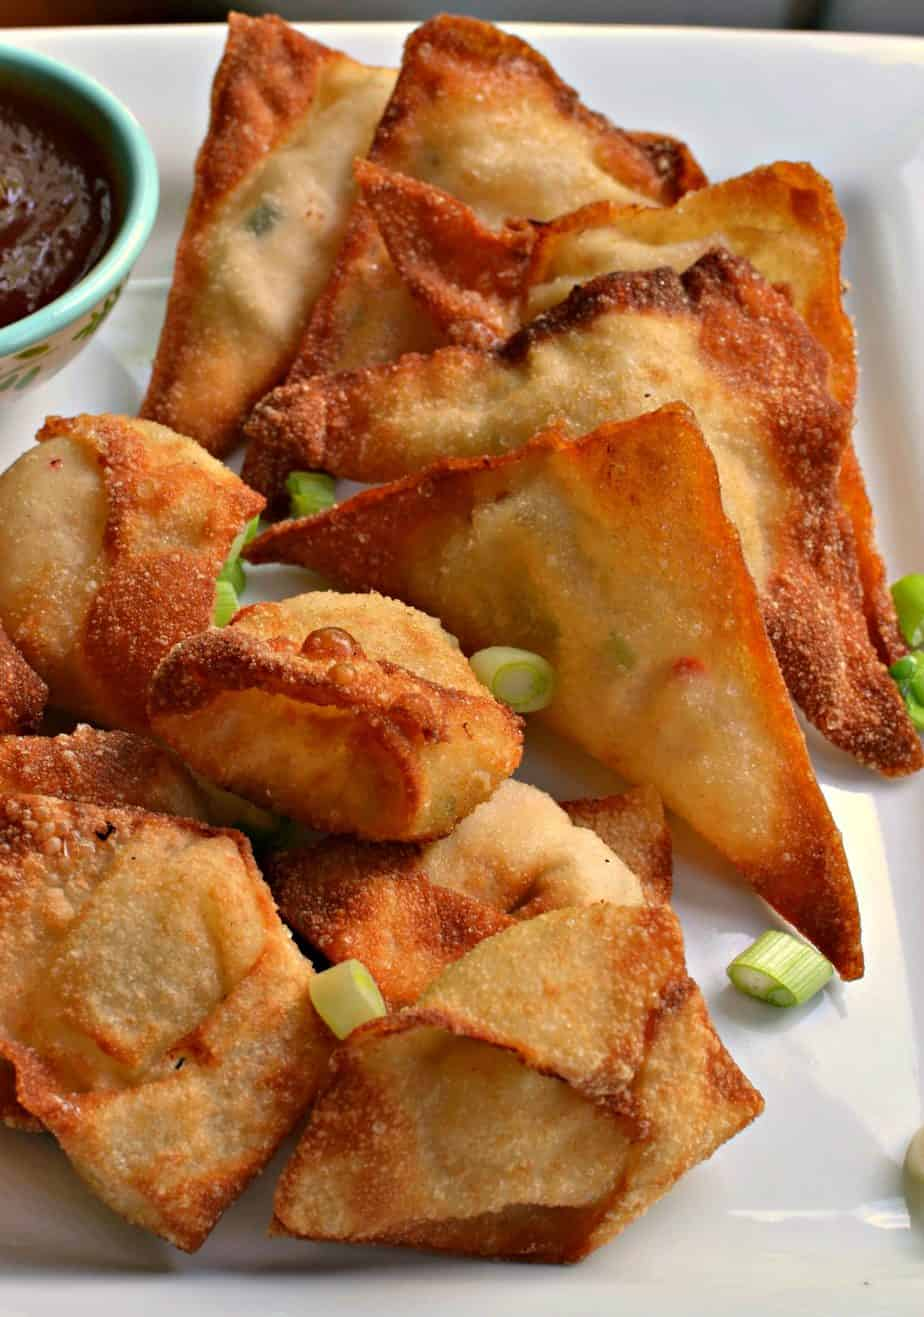 Crab Rangoons are delectable crispy fried wontons stuffed with cream cheese and crab meat.